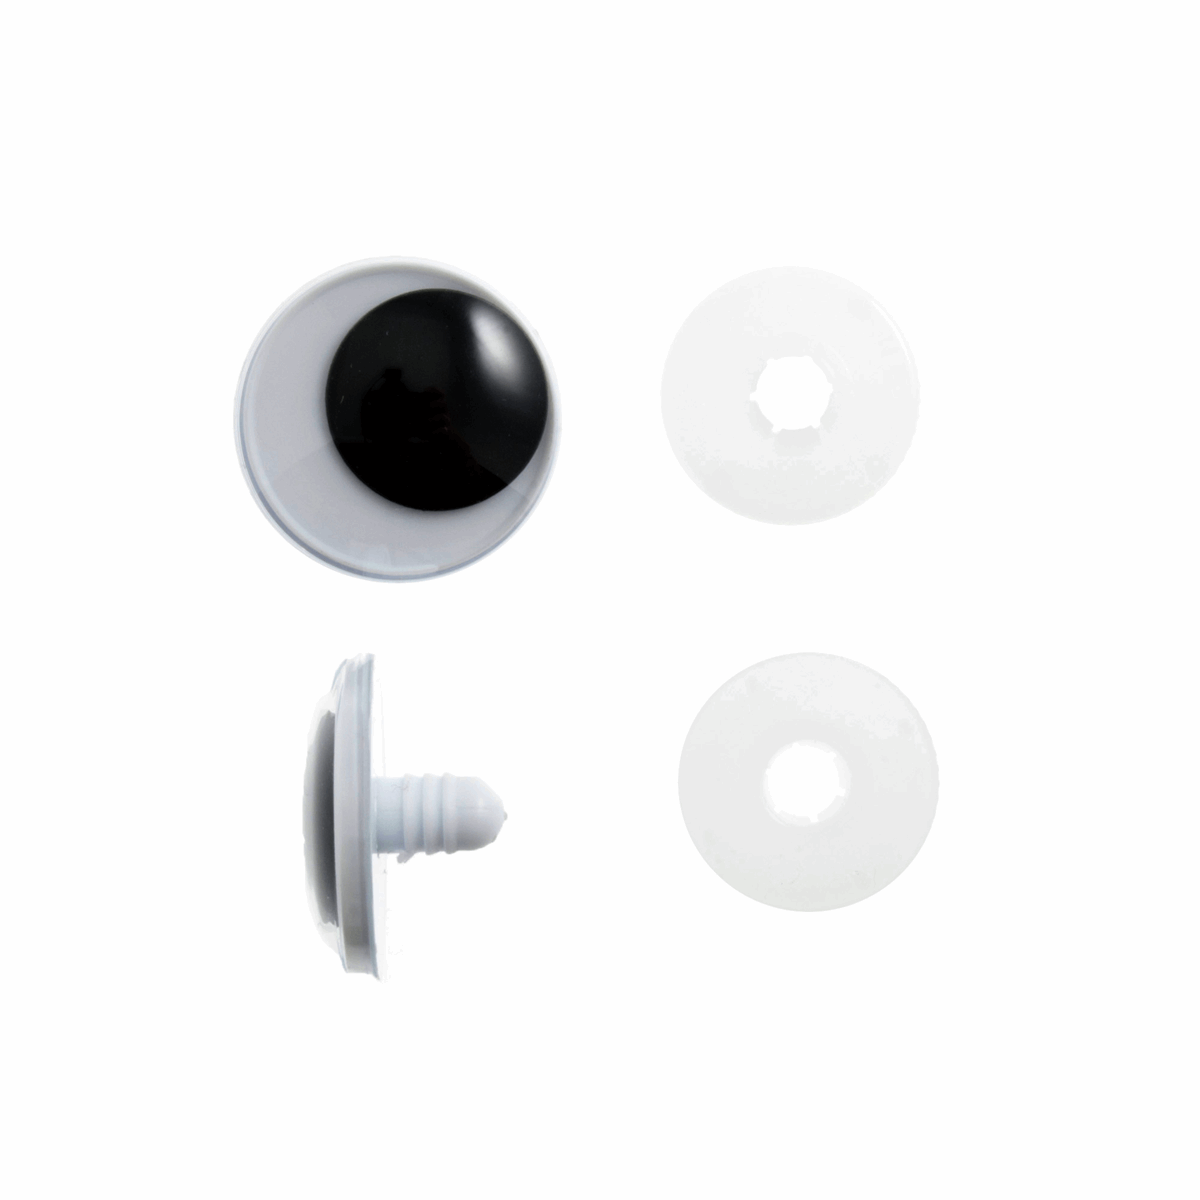 Toy Eyes: Safety Googly: 15mm: Black: 4 Pack